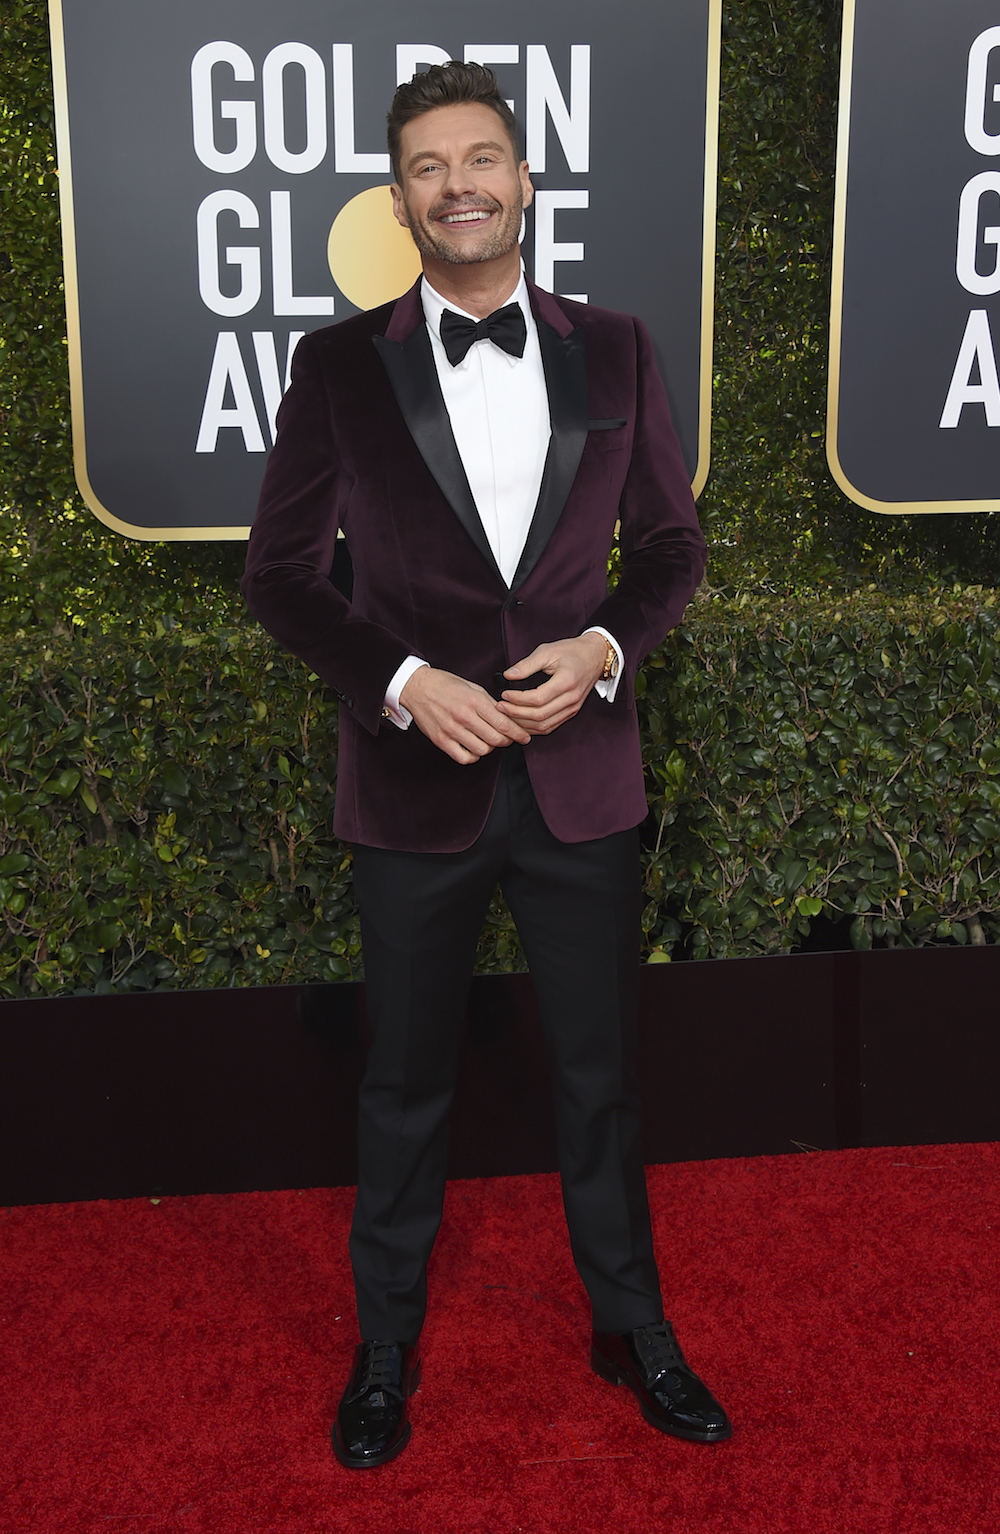 <div class='meta'><div class='origin-logo' data-origin='AP'></div><span class='caption-text' data-credit='Invision'>Ryan Seacrest arrives at the 76th annual Golden Globe Awards at the Beverly Hilton Hotel on Sunday, Jan. 6, 2019, in Beverly Hills, Calif.</span></div>